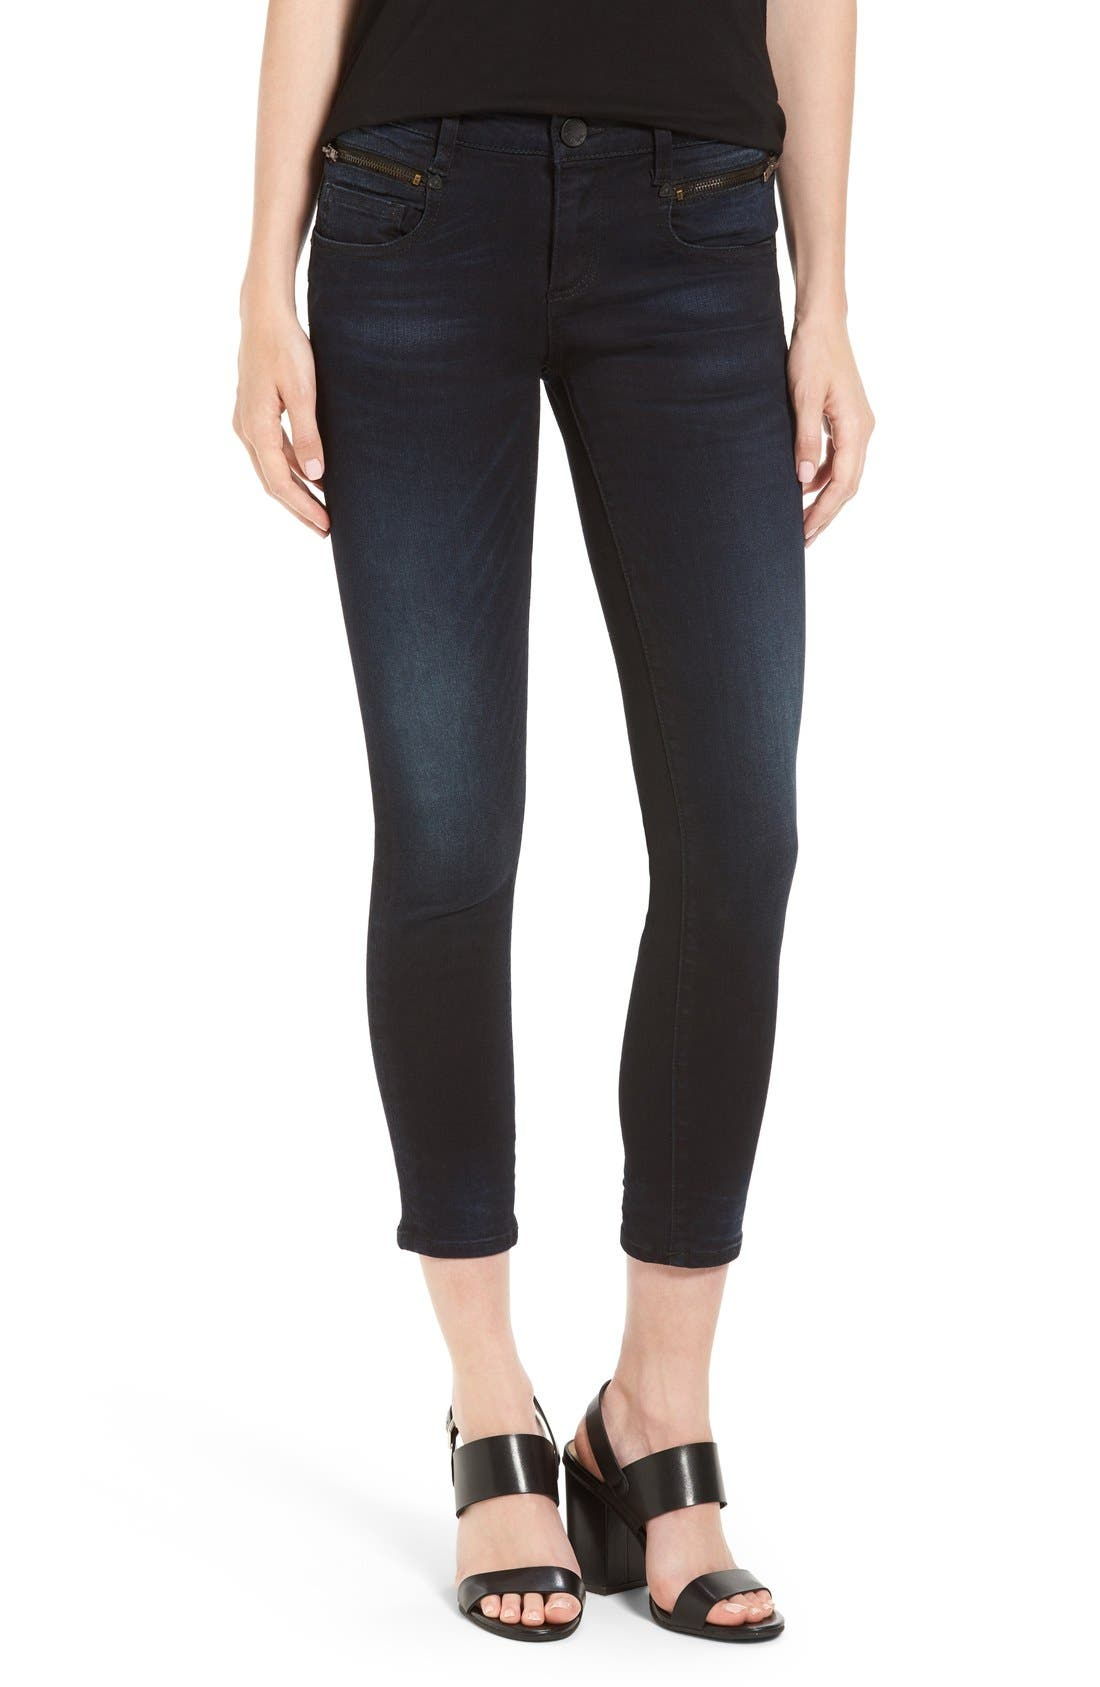 Alternate Image 1 Selected - KUT from the Kloth Stretch Crop Skinny Jeans (Refresh)